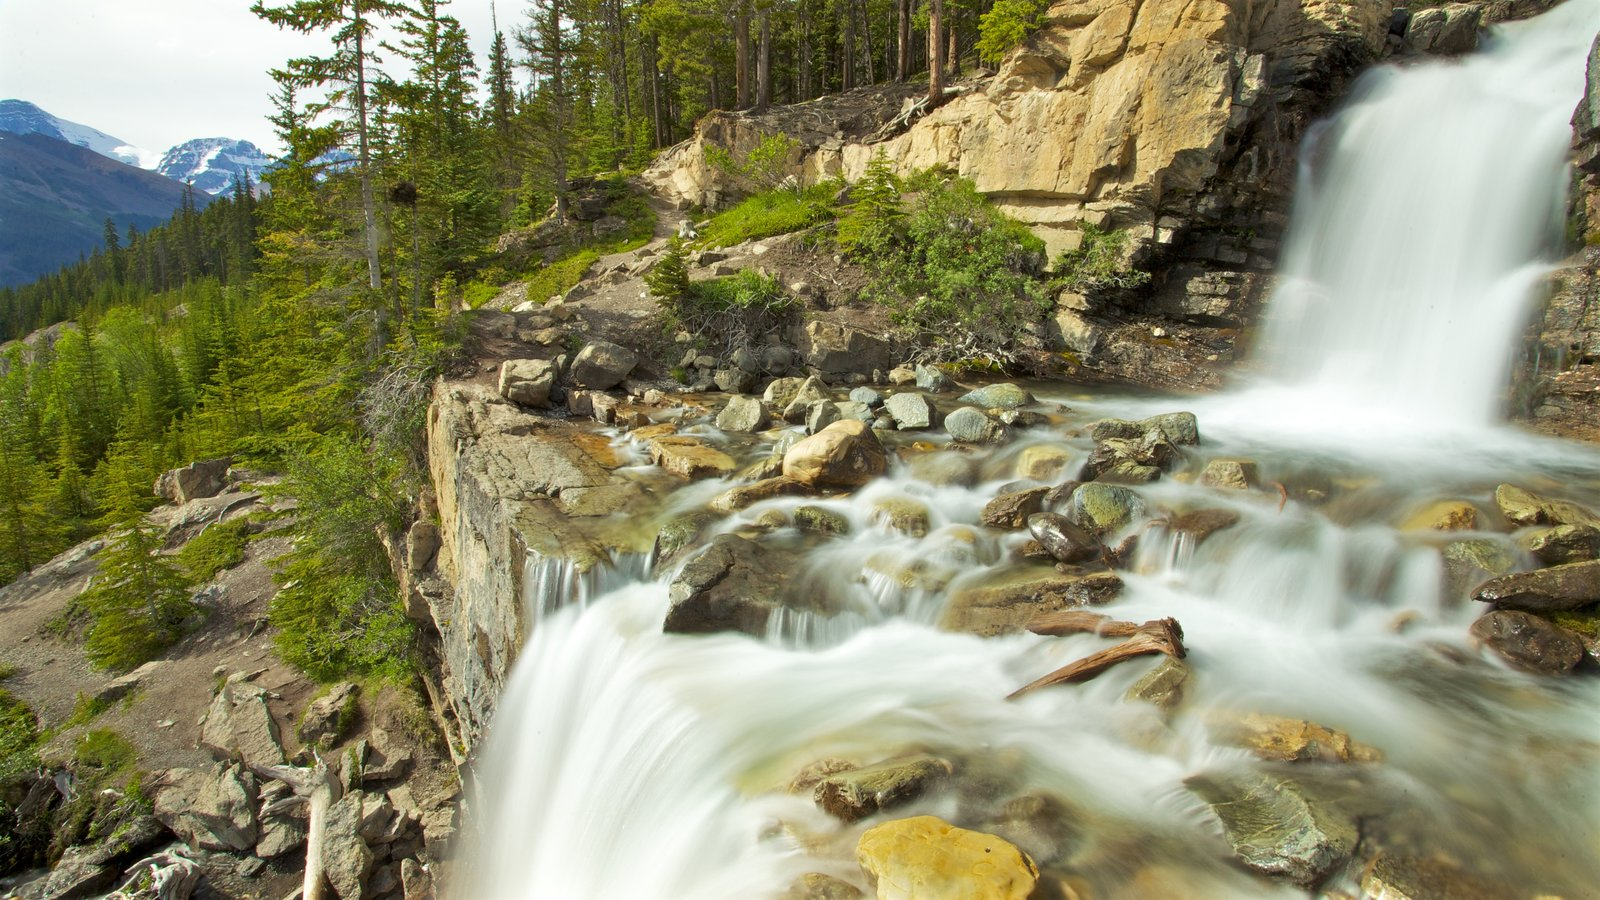 Tangle Falls which includes a waterfall and landscape views